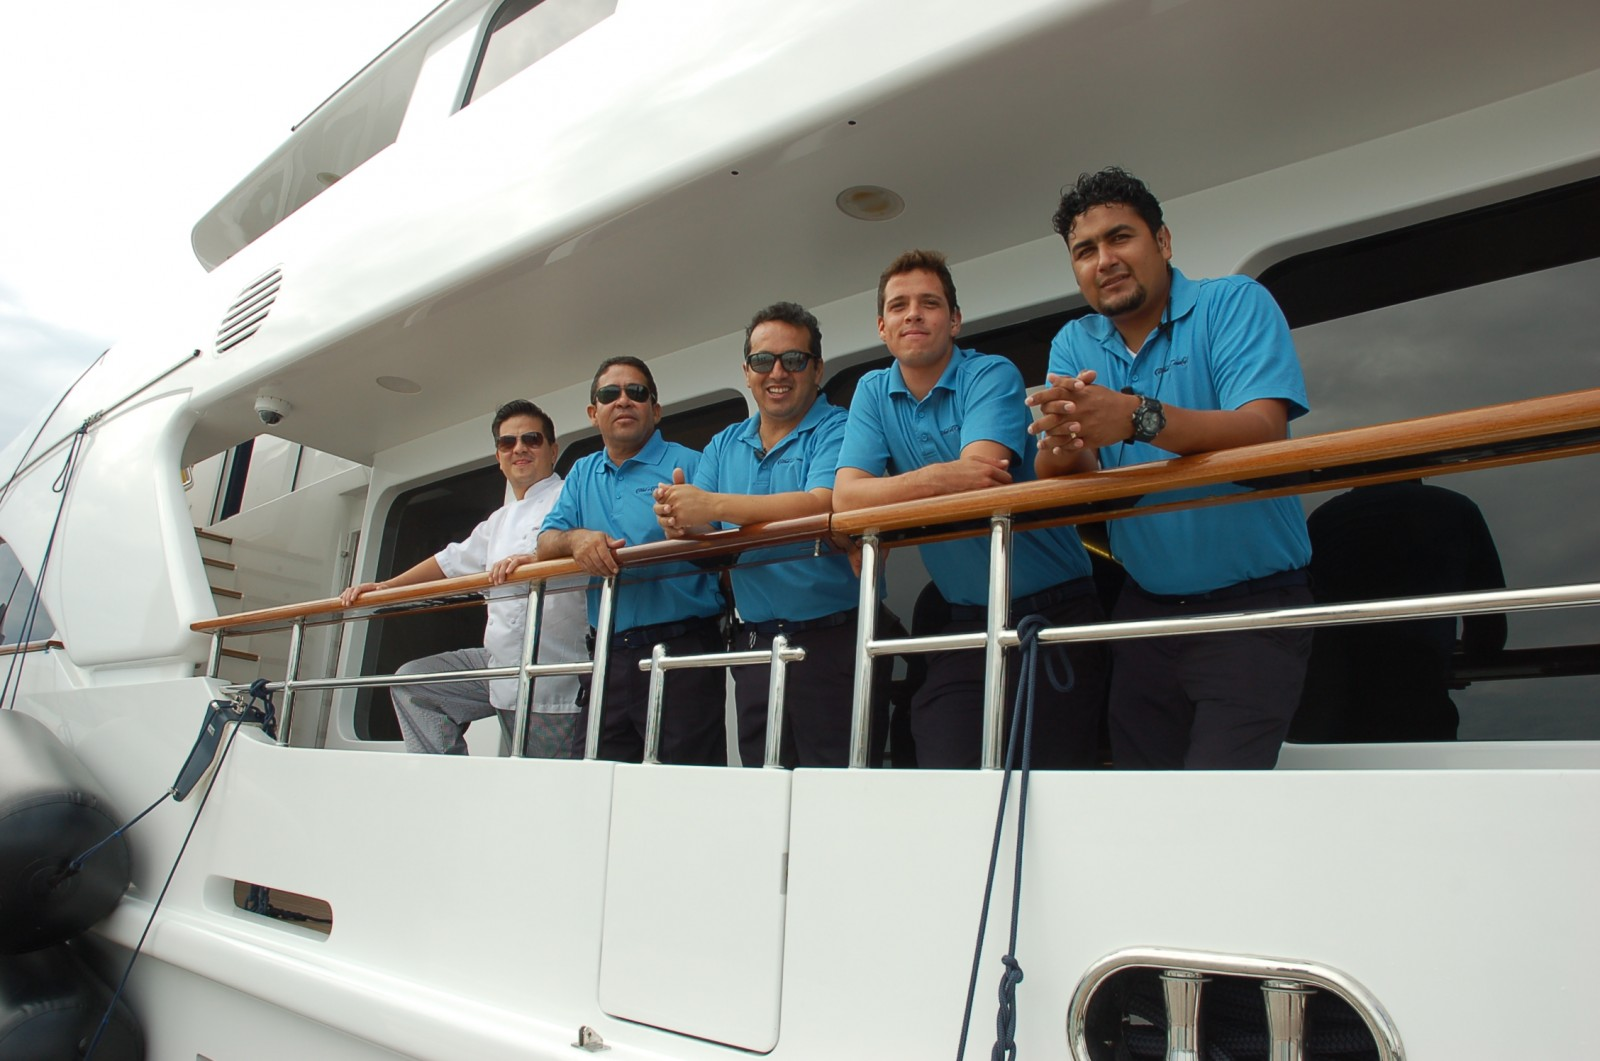 The crew of M/Y What a Country on deck for the official opening of Deep Harbour, the marina section of Watson Island's Island Garden on Jan. 8. From left, Chef Rodolfo Pichardo Montero, Antonio Cebrero, Capt. Agustin Hernandez, Elliot Castellanos and Luis Gonzalez. PHOTO DORIE COX